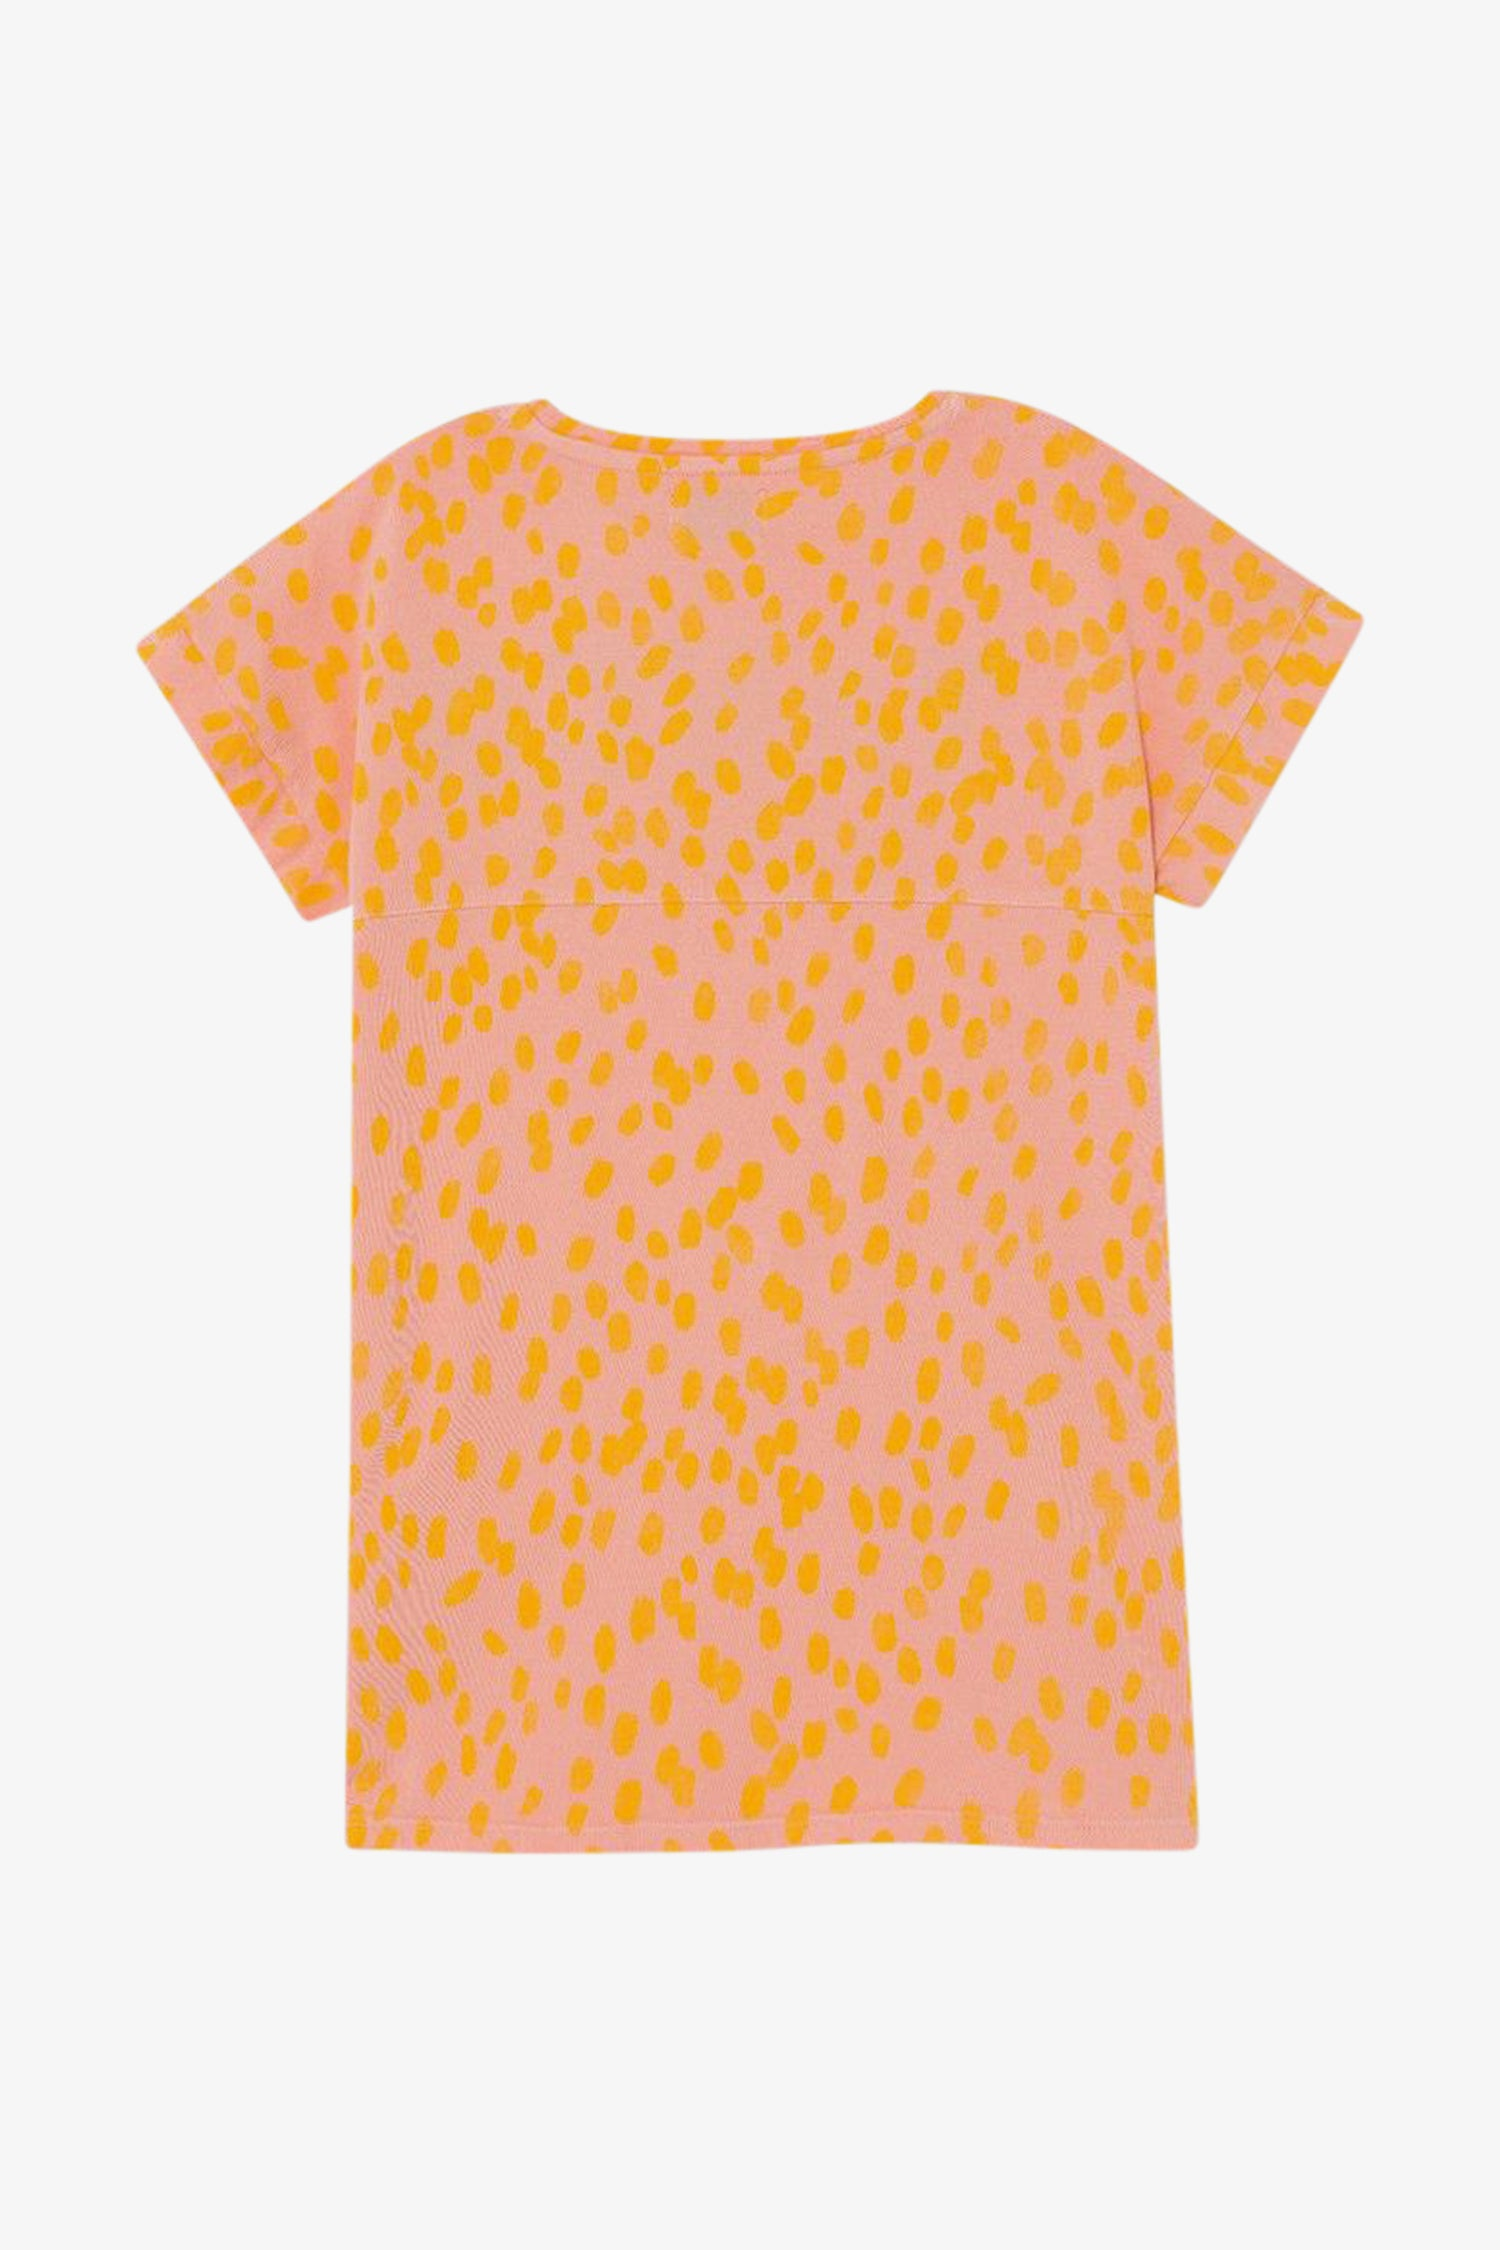 Selectshop FRAME - BOBO CHOSES Tango T-Shirt Dress Kids Dubai